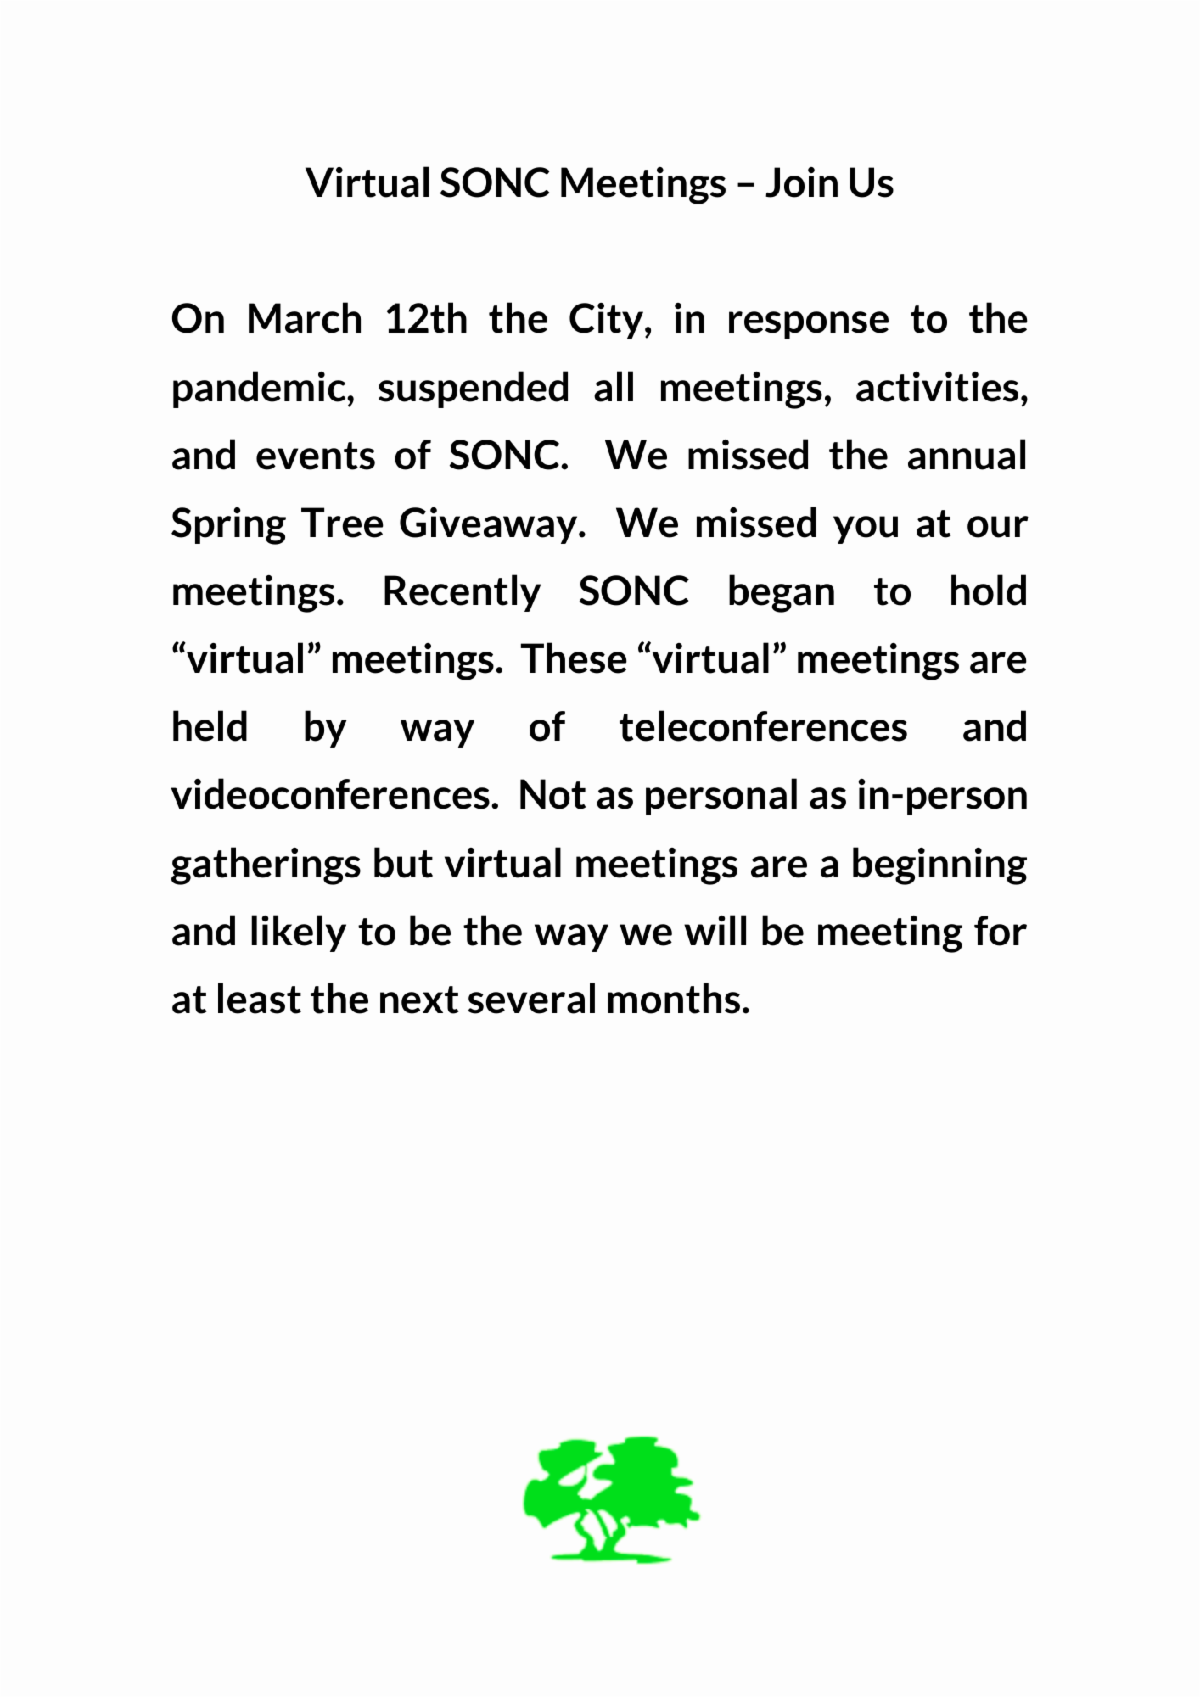 SONC began to hold virtual meetings. These virtual meetings are held by way of teleconferences and videoconferences through Zoom.